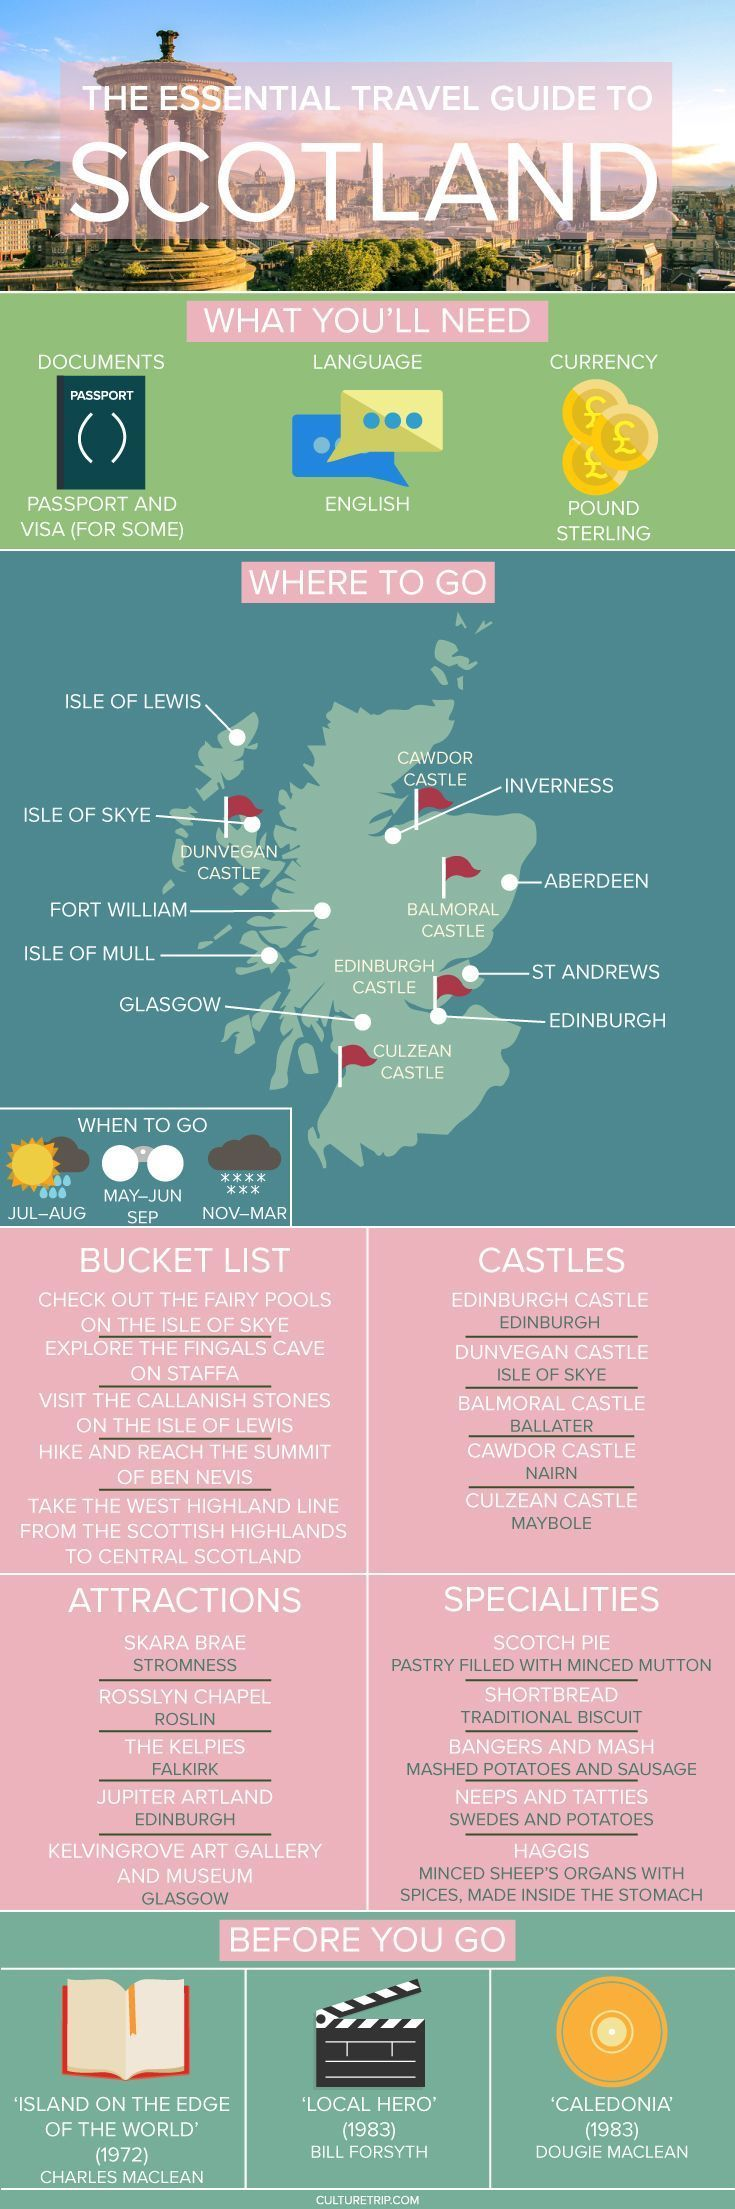 The Essential Travel Guide for Scotland (Info … – #the #essentials #essenz …